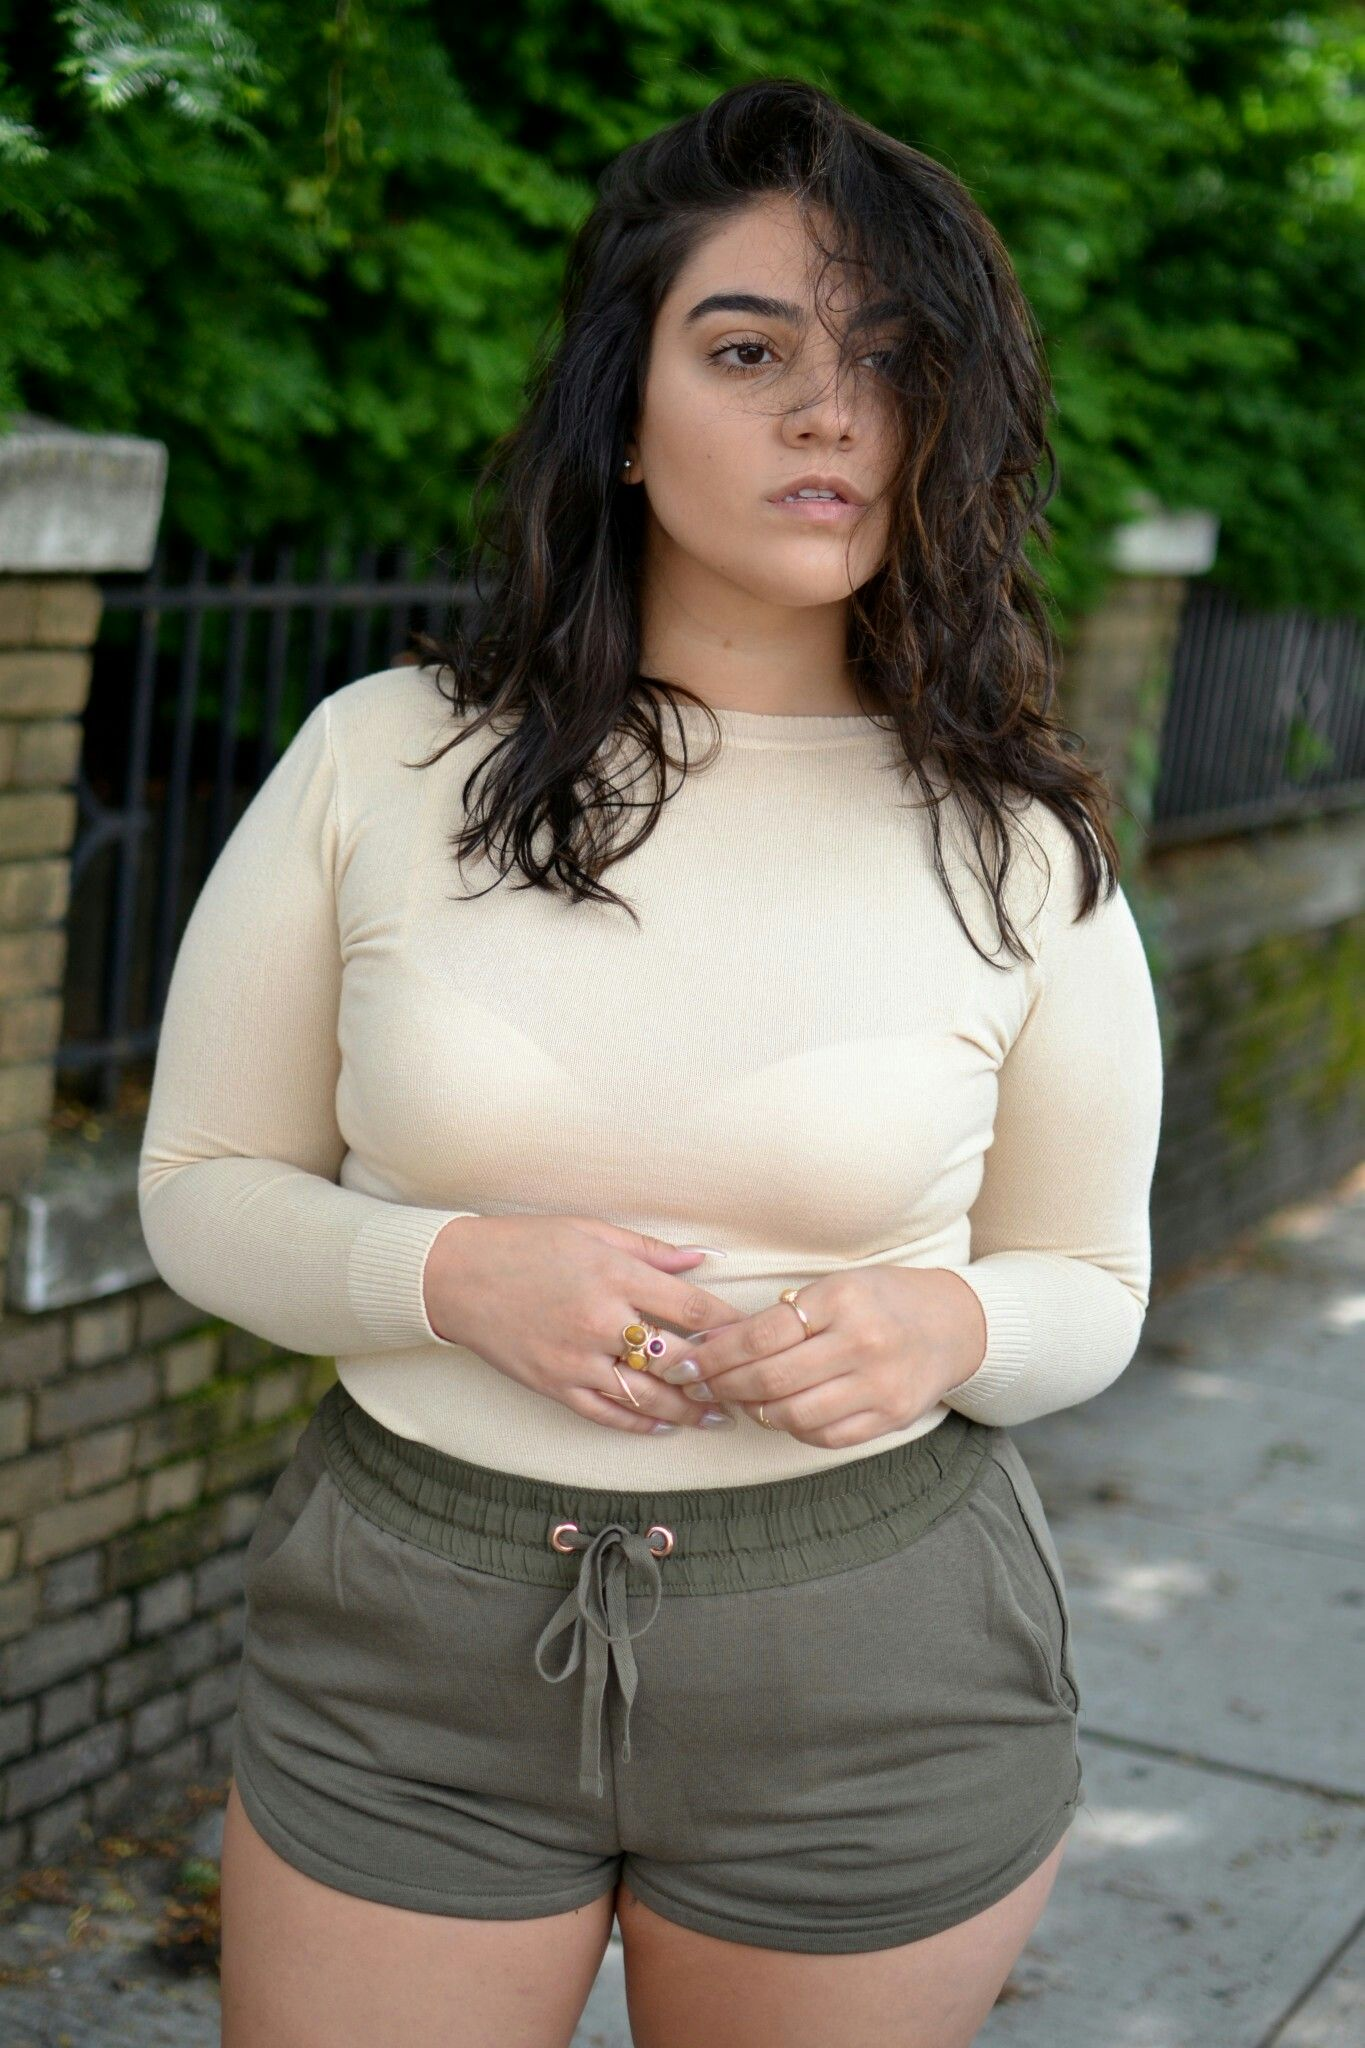 Pin By Regretting The Name On Nadia Aboulhosn Nadia Aboulhosn Curvy Shorts Curvy Fashion